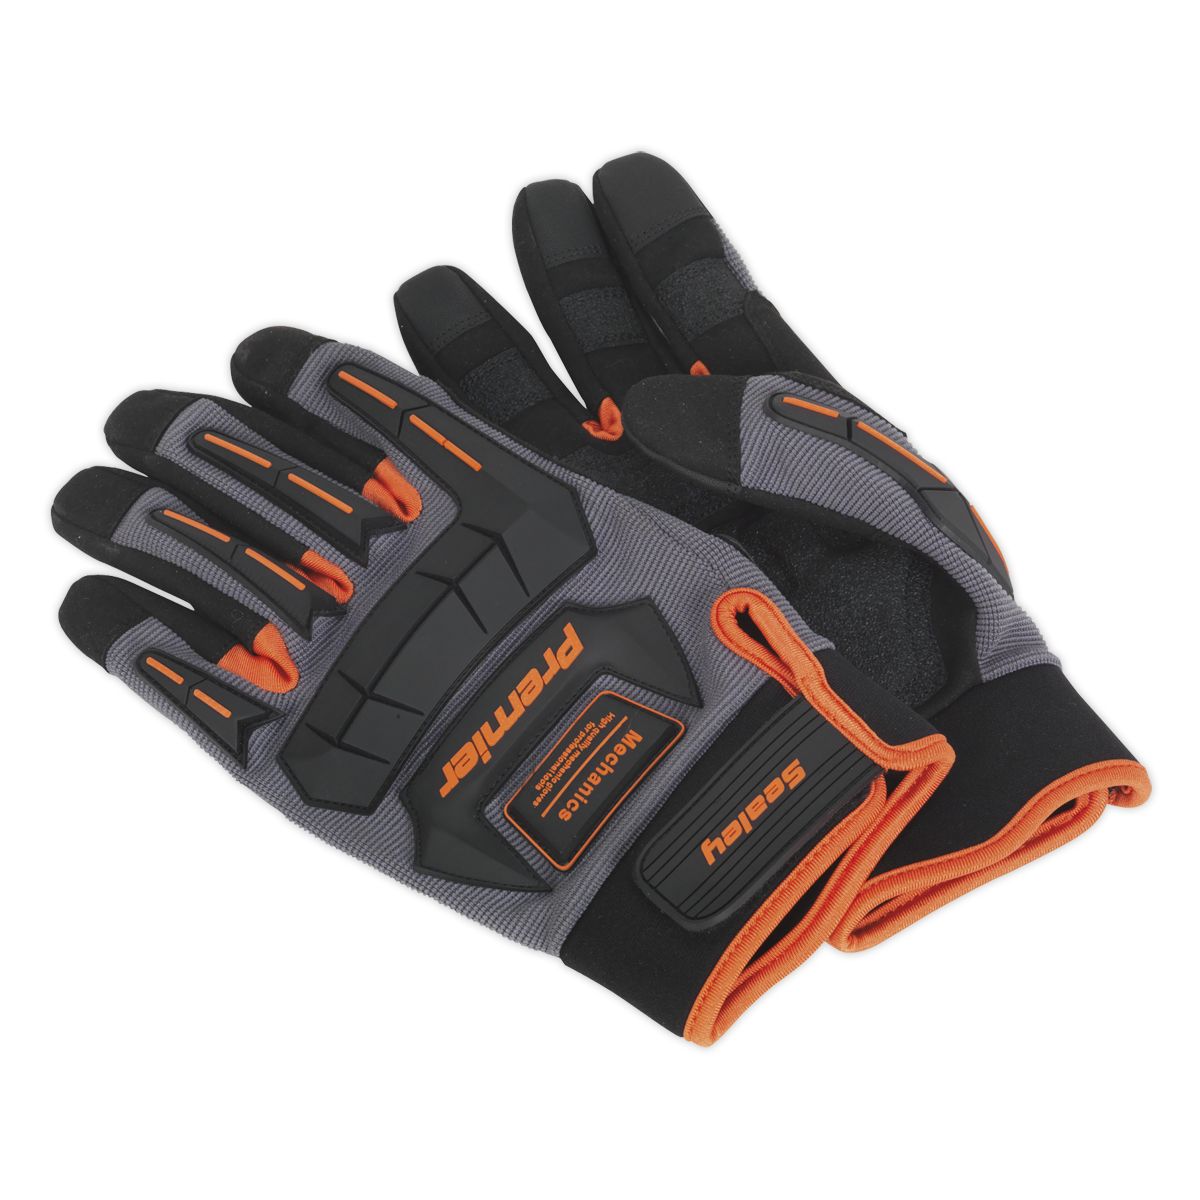 Mechanic's Gloves Anti-Collision - Extra Large